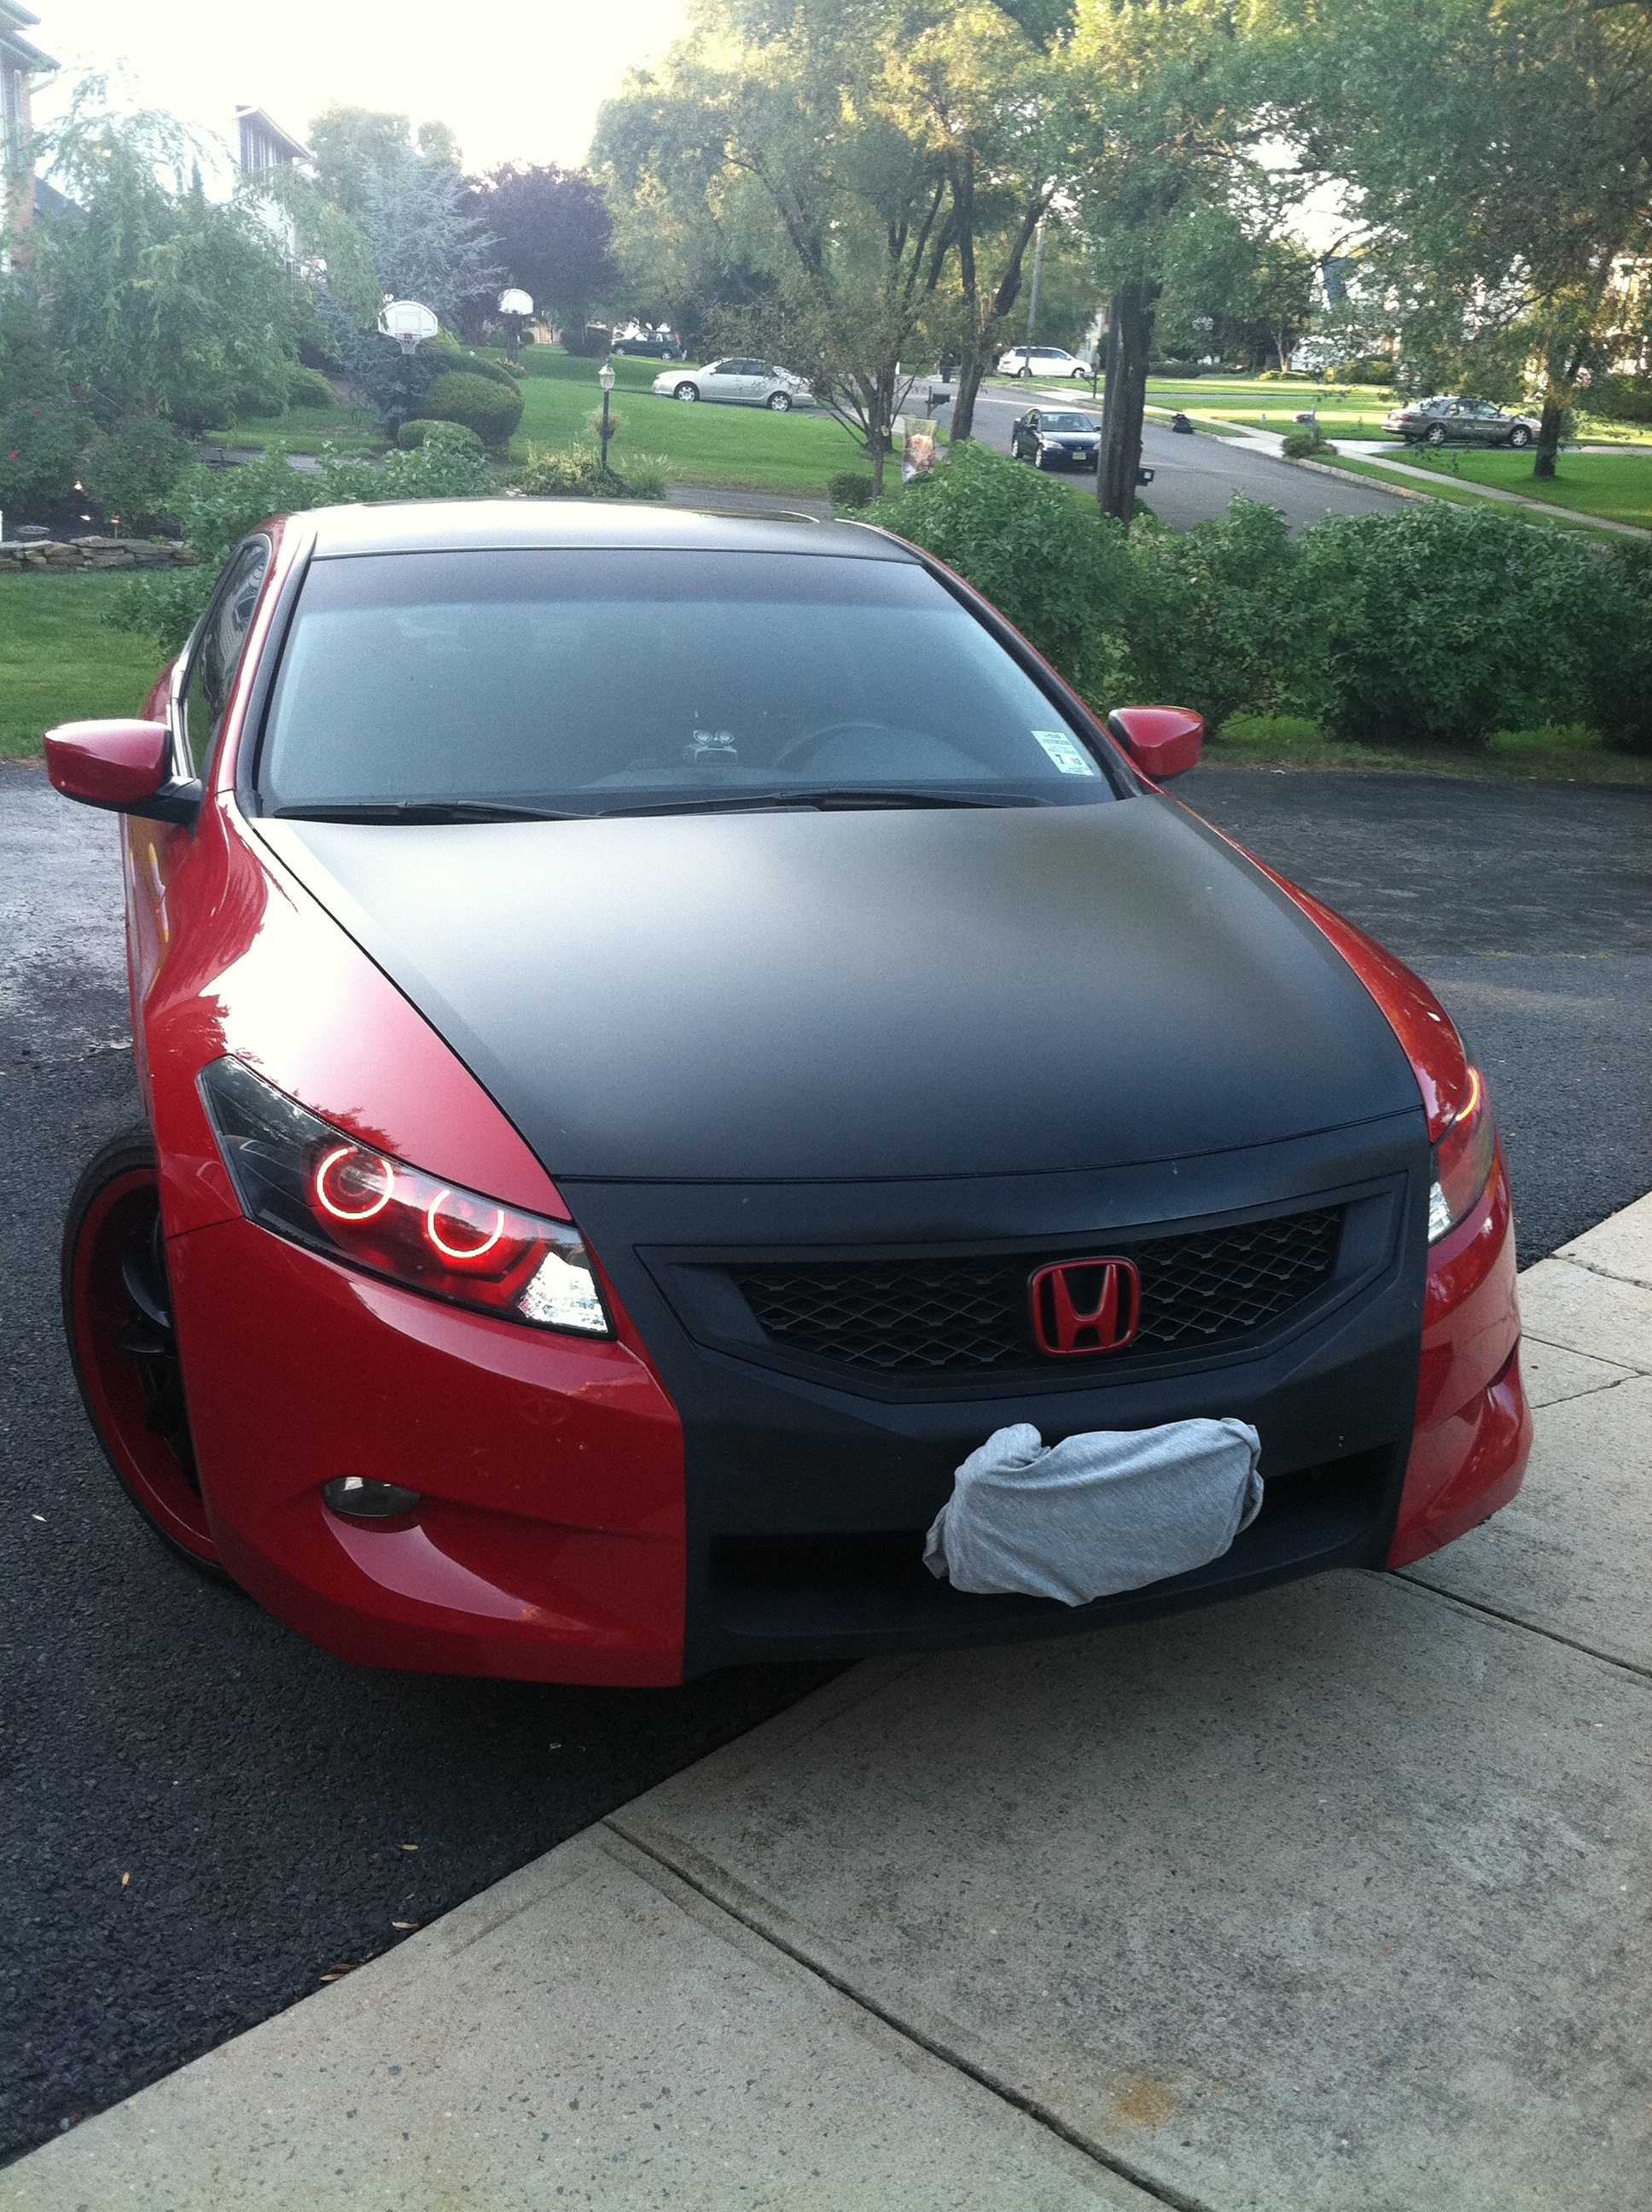 2008 Honda Accord Custom : honda, accord, custom, Bub022's, Profile, Brunswick,, CarDomain.com